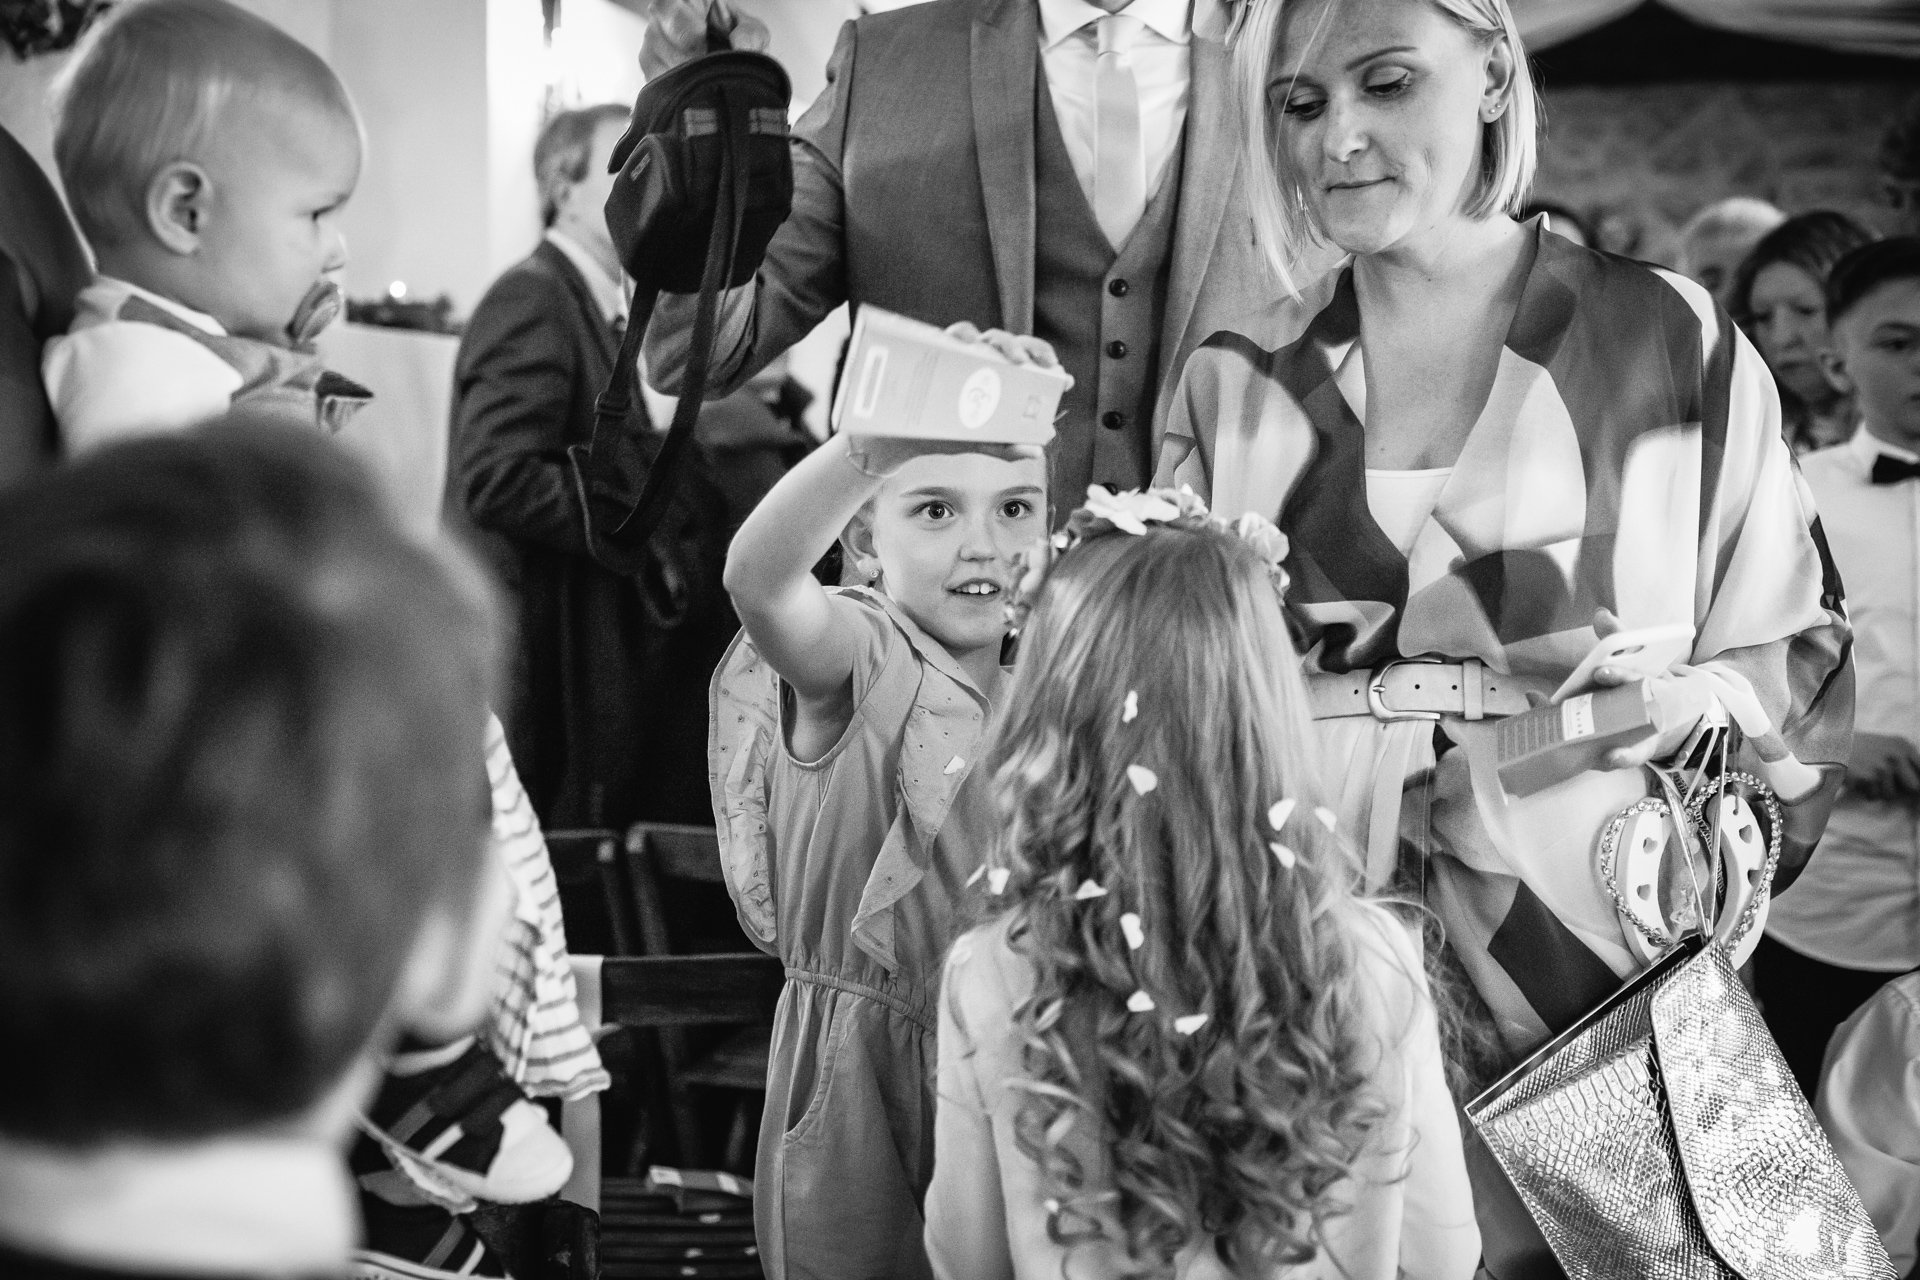 Child pouring confetti over another Childs head after a wedding ceremony